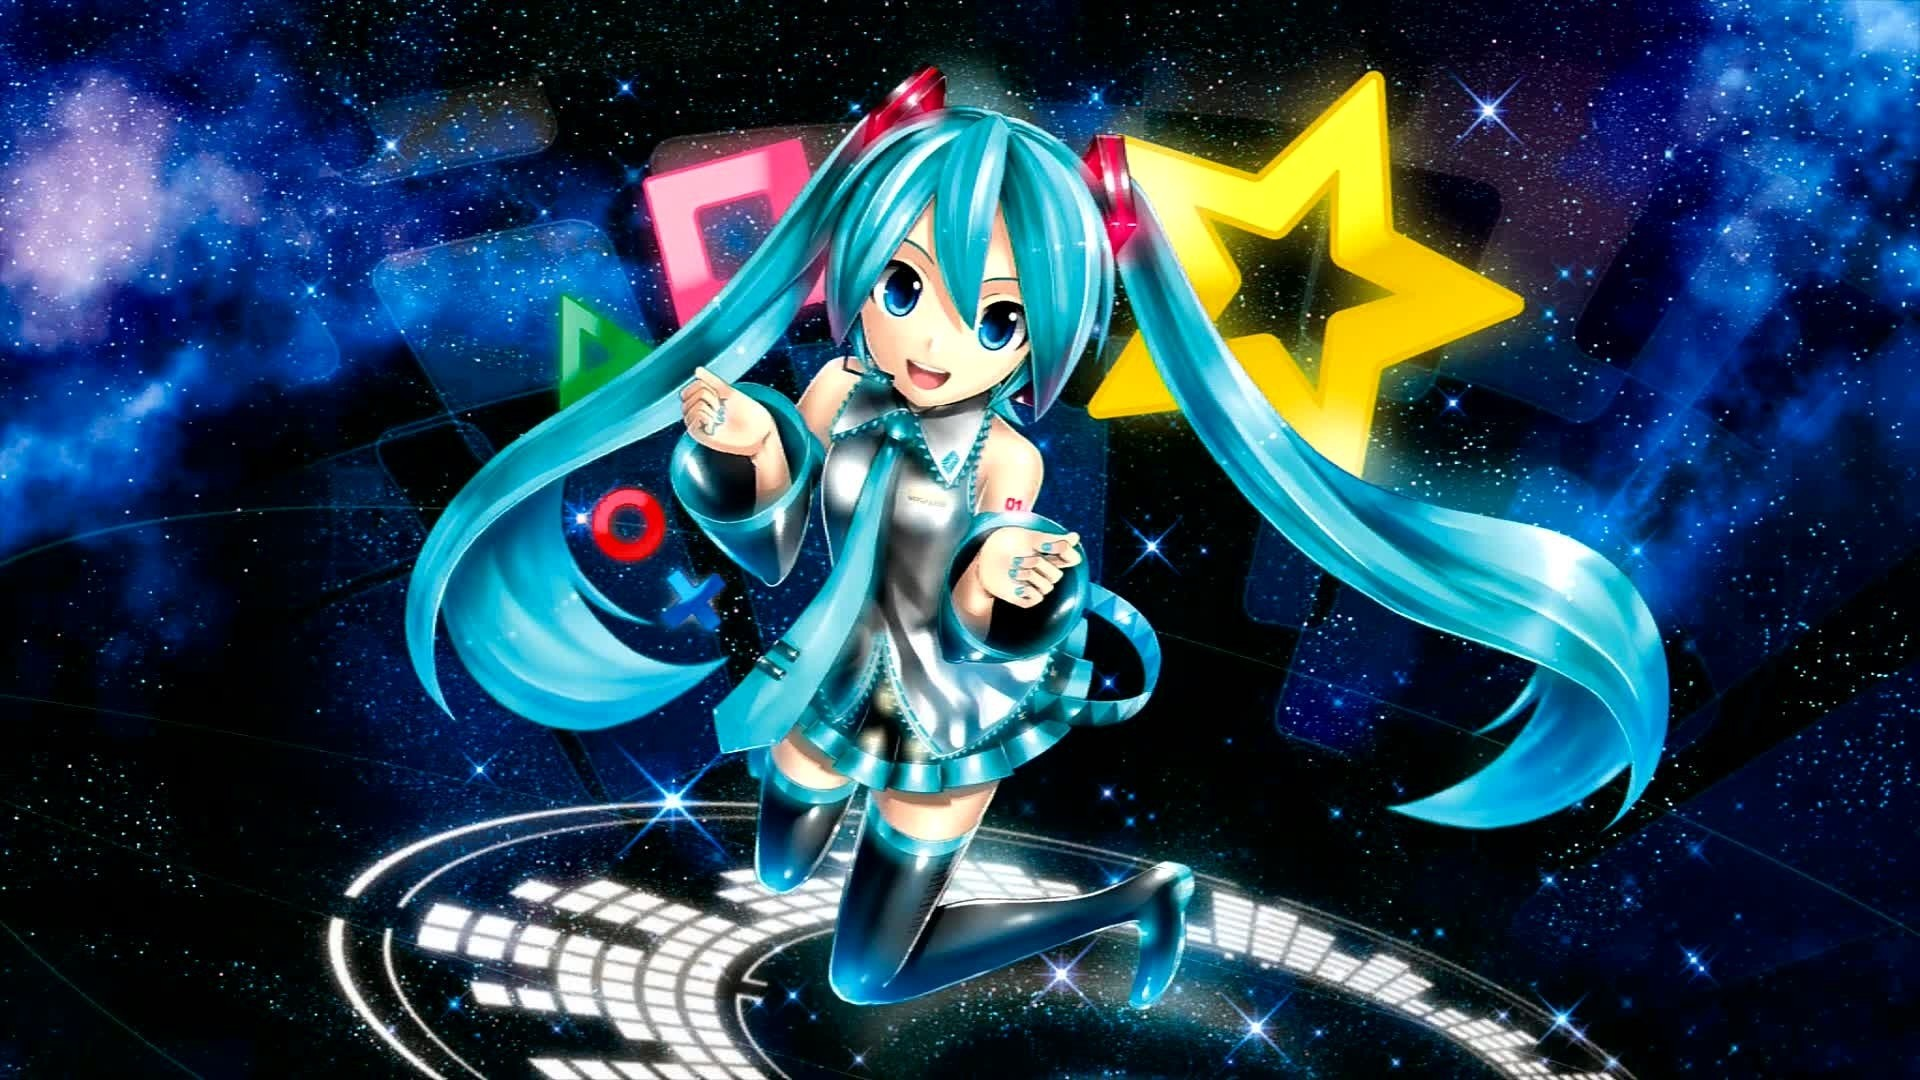 Hatsune Miku a wallpaper